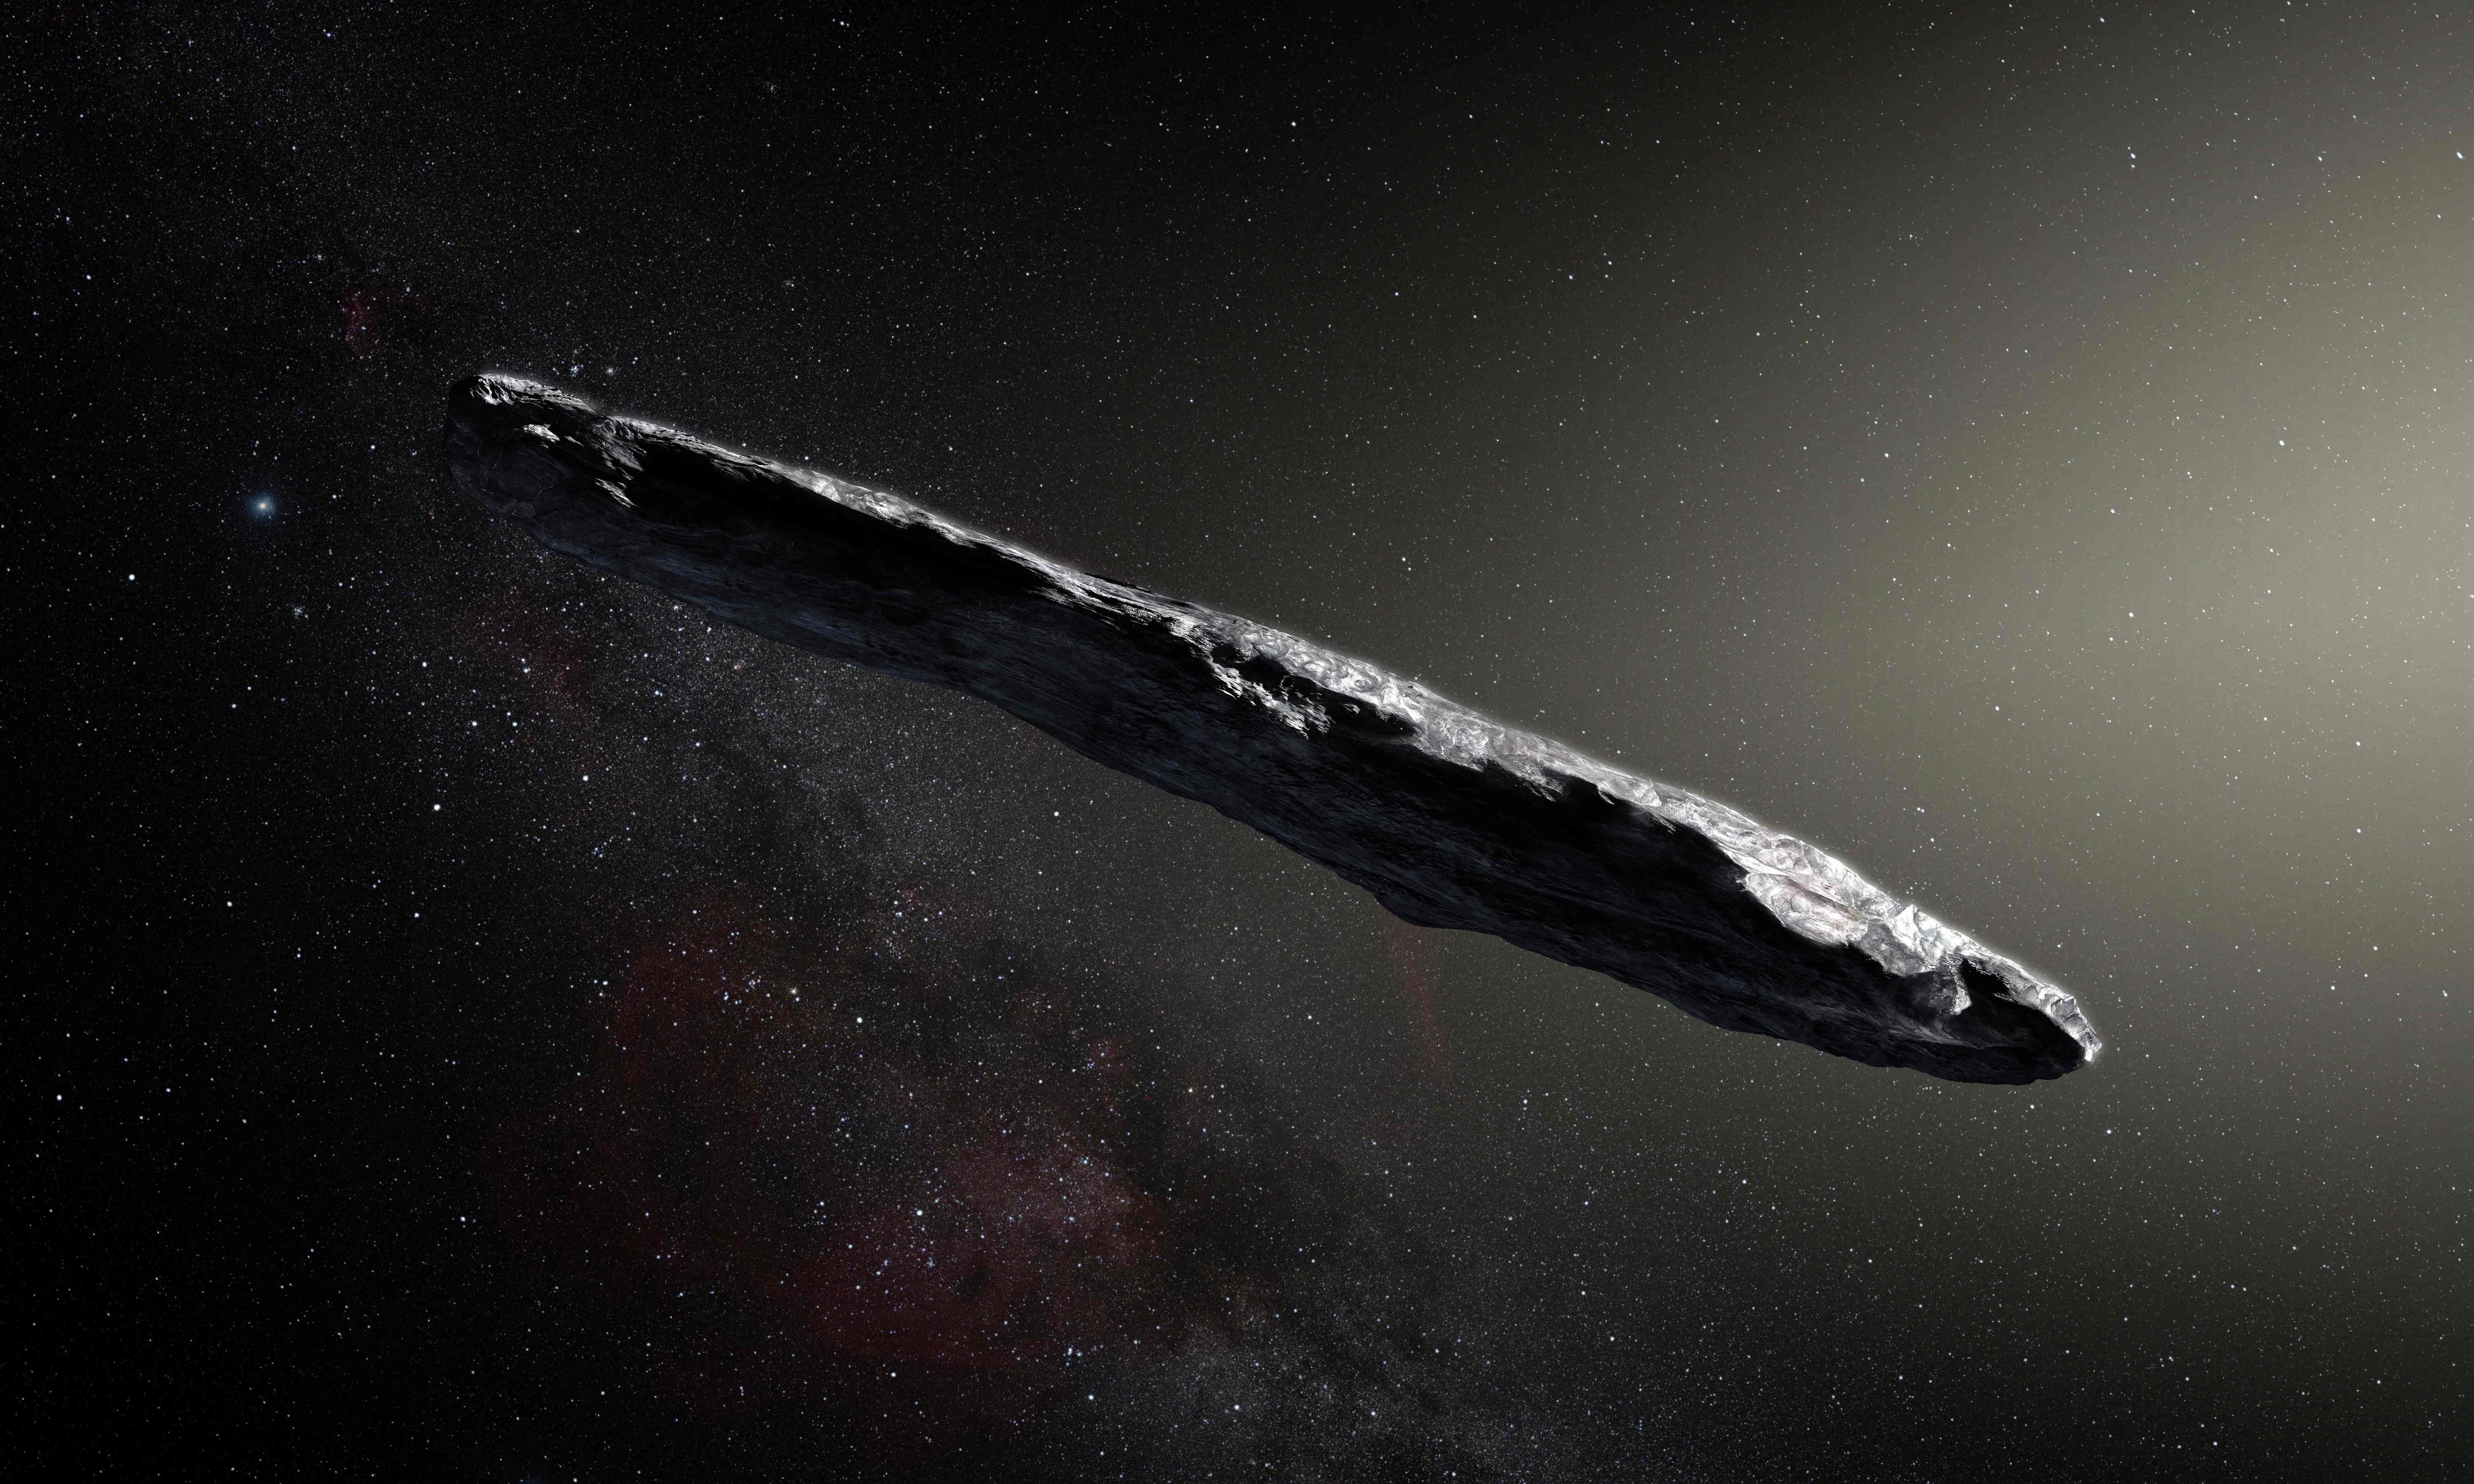 Do scientists really think 'Oumuamua is an alien spaceship?